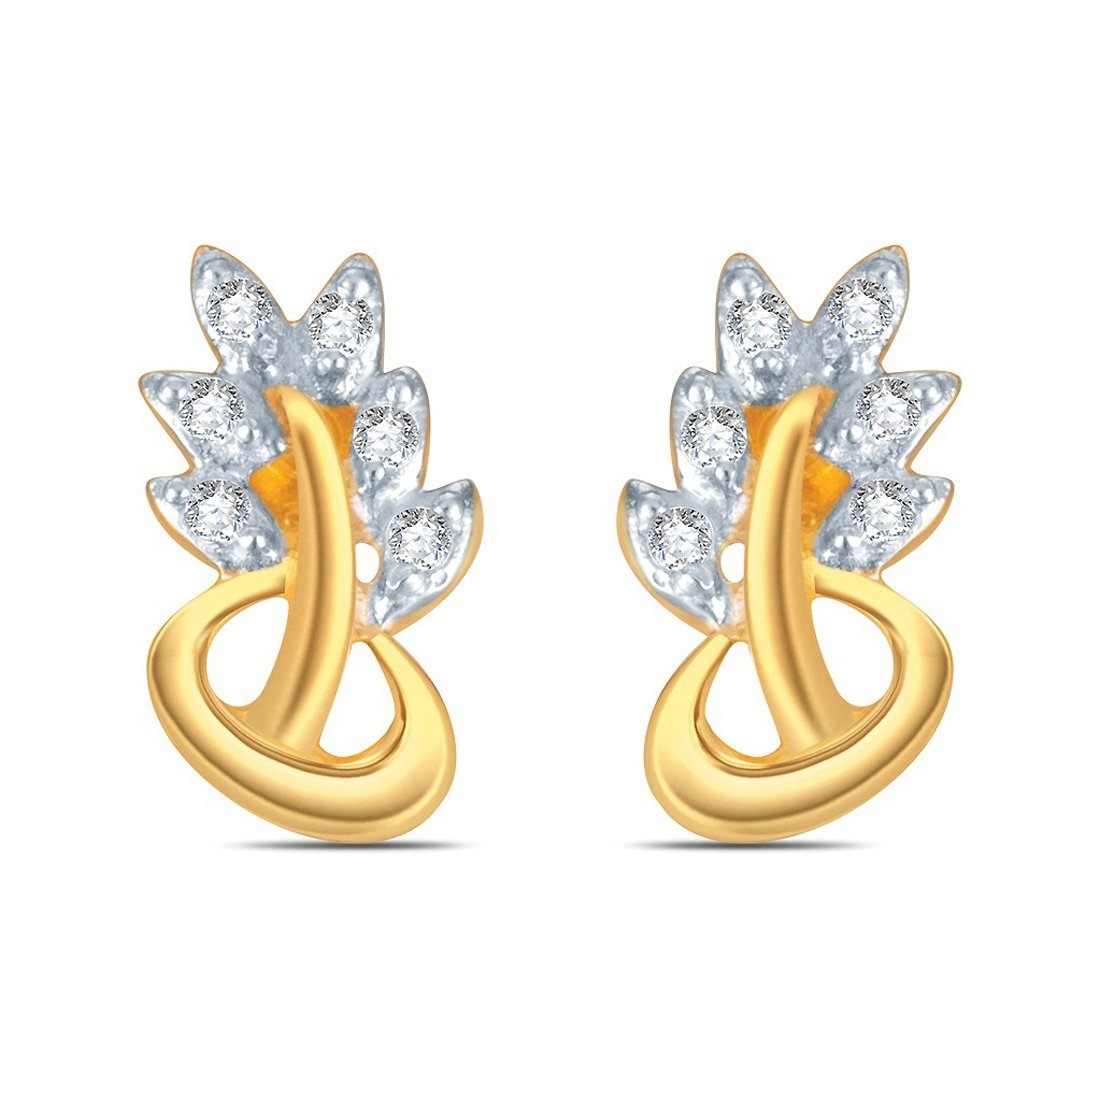 0.10 Ct Round White Cubic Zirconia Leaf Style Stud Earrings for Womens Girls in 14k Yellow Gold Over